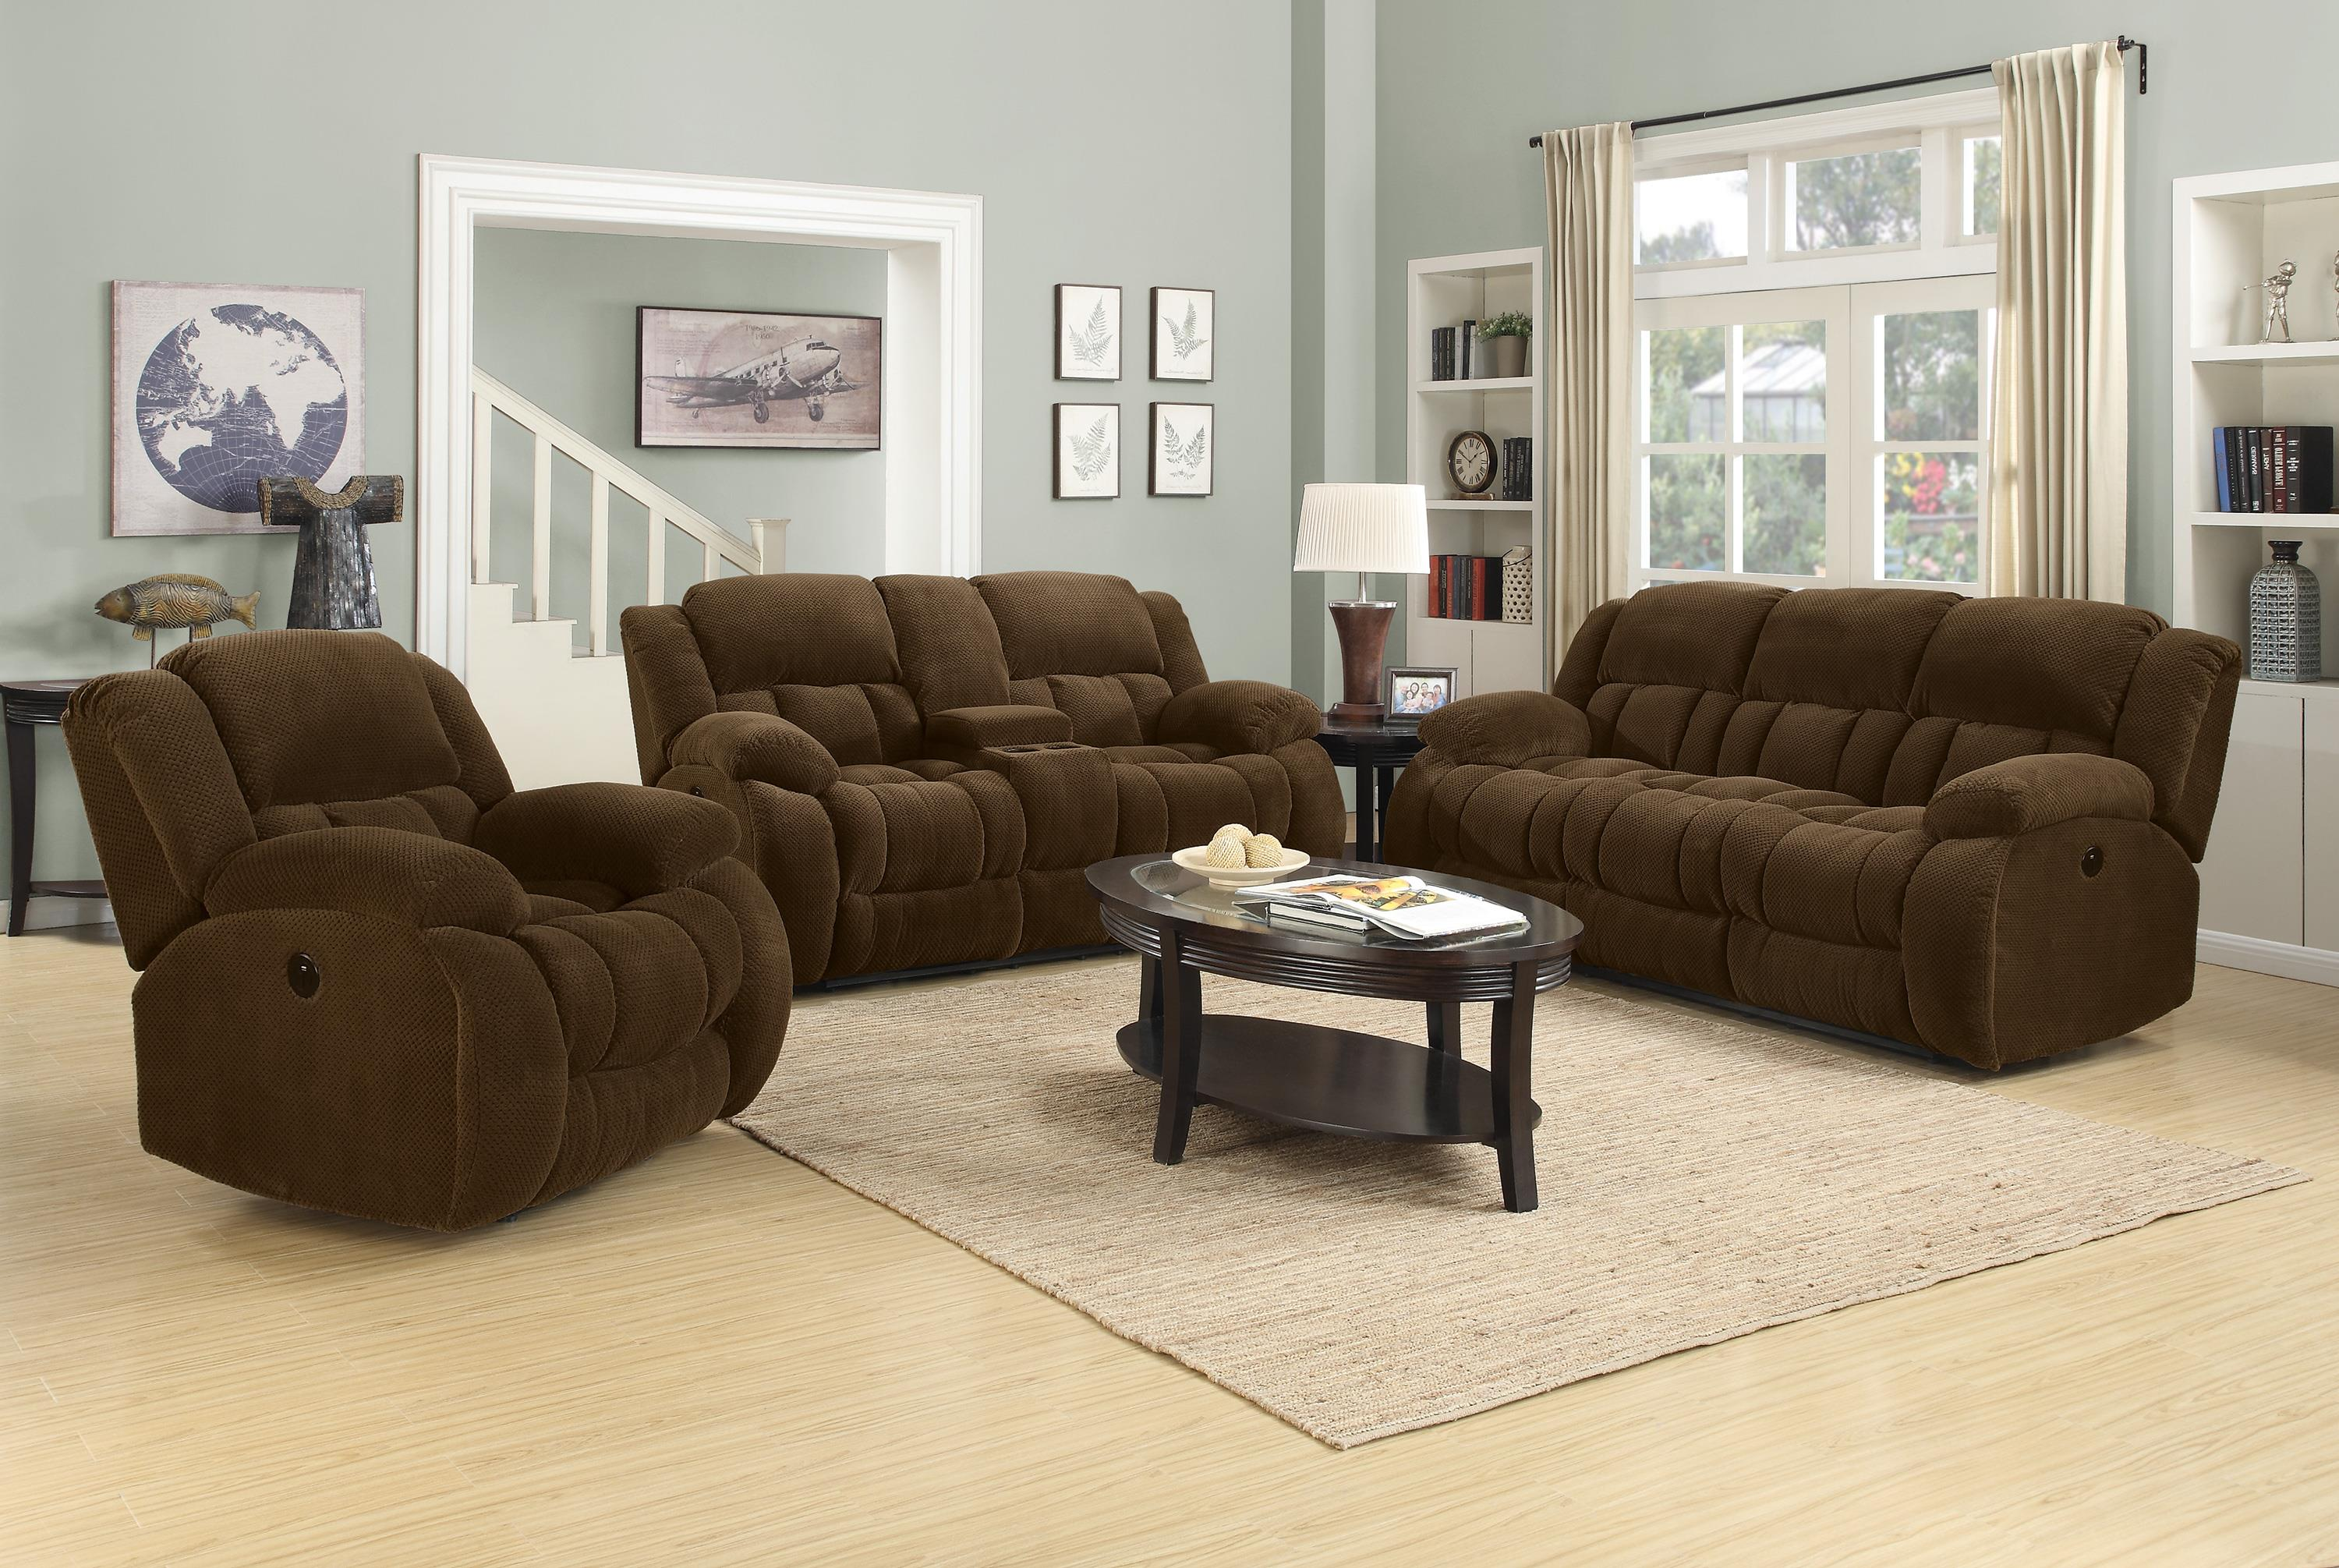 Reclining Living Room Furniture Sets Coaster Weissman Casual Pillow Padded Reclining Sofa Coaster